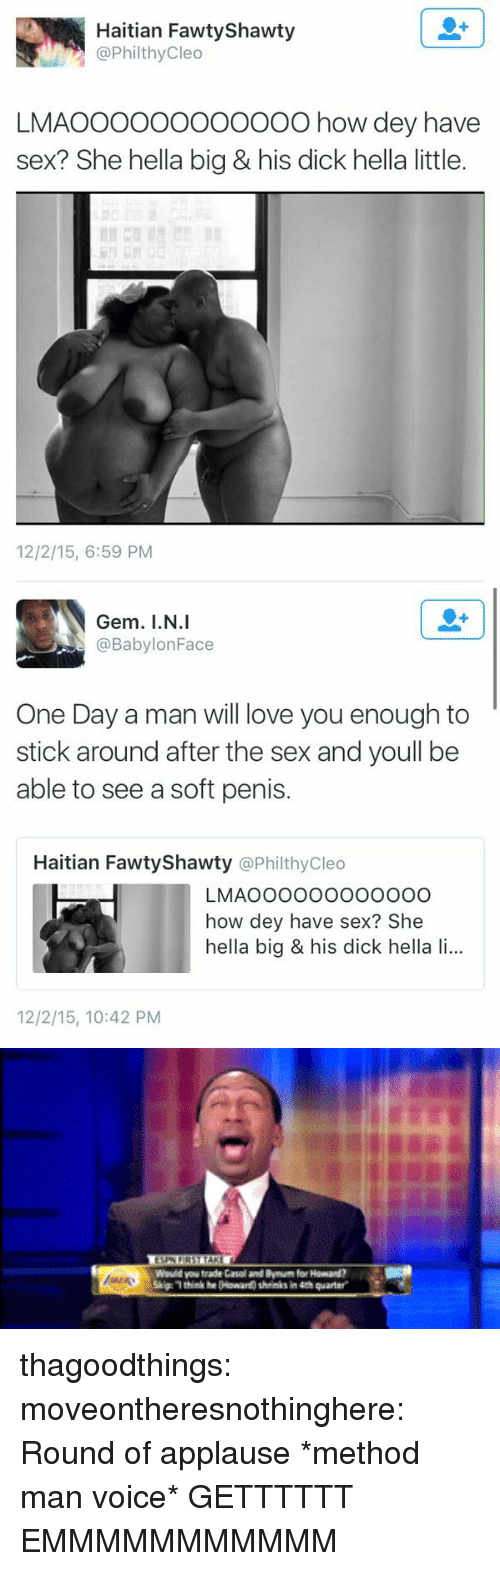 Love, Sex, and Target: Haitian Fawty Shawty  @PhilthyCleo  LMAOOOOOo0o00OO how dey have  sex? She hella big & his dick hella little.  12/2/15, 6:59 PM   Gem. I.N.I  @BabylonFace  One Day a man will love you enough to  stick around after the sex and youll be  able to see a soft penis.  Haitian FawtyShawty @PhilthyCleo  LMAOOOOoooooooO  how dey have sex? She  hella big & his dick hella li...  12/2/15, 10:42 PM   think he 00 ar  thinks in 4th quarter. thagoodthings:  moveontheresnothinghere:  Round of applause  *method man voice* GETTTTTT EMMMMMMMMMMM